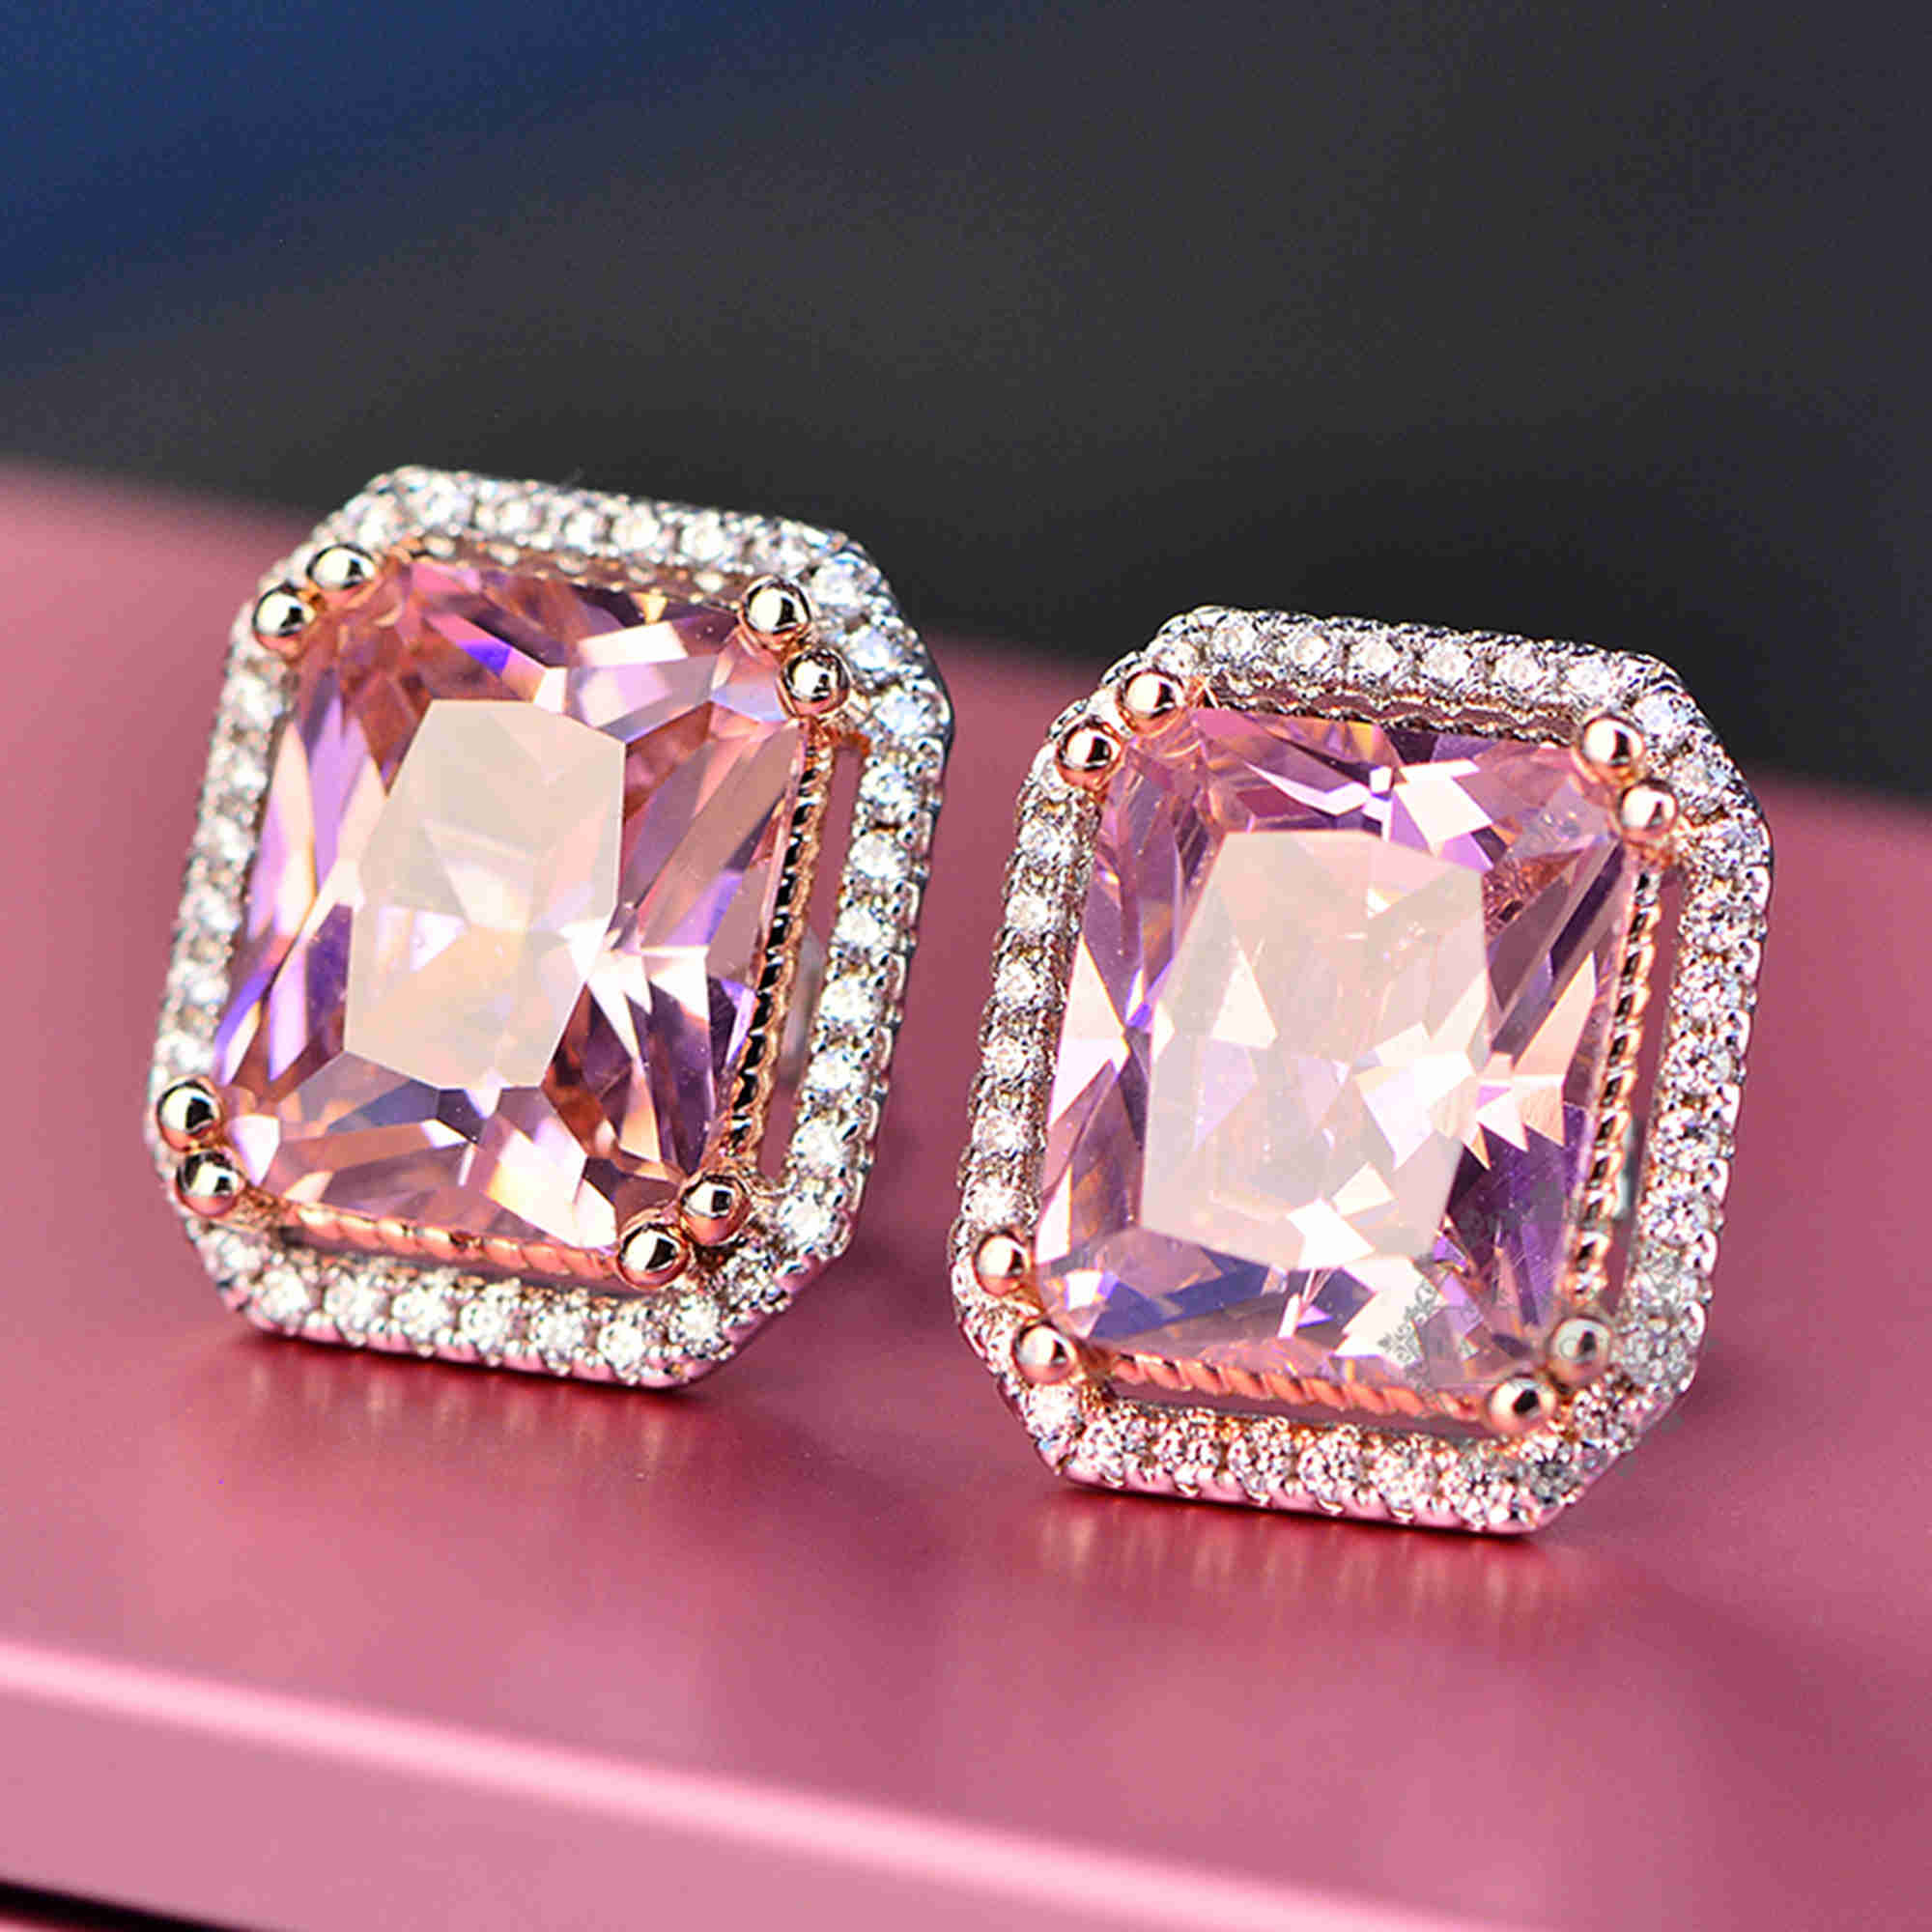 1Pair 11x13MM Silver Pink Rectangle Large CZ Cubic Zirconia Pave ...